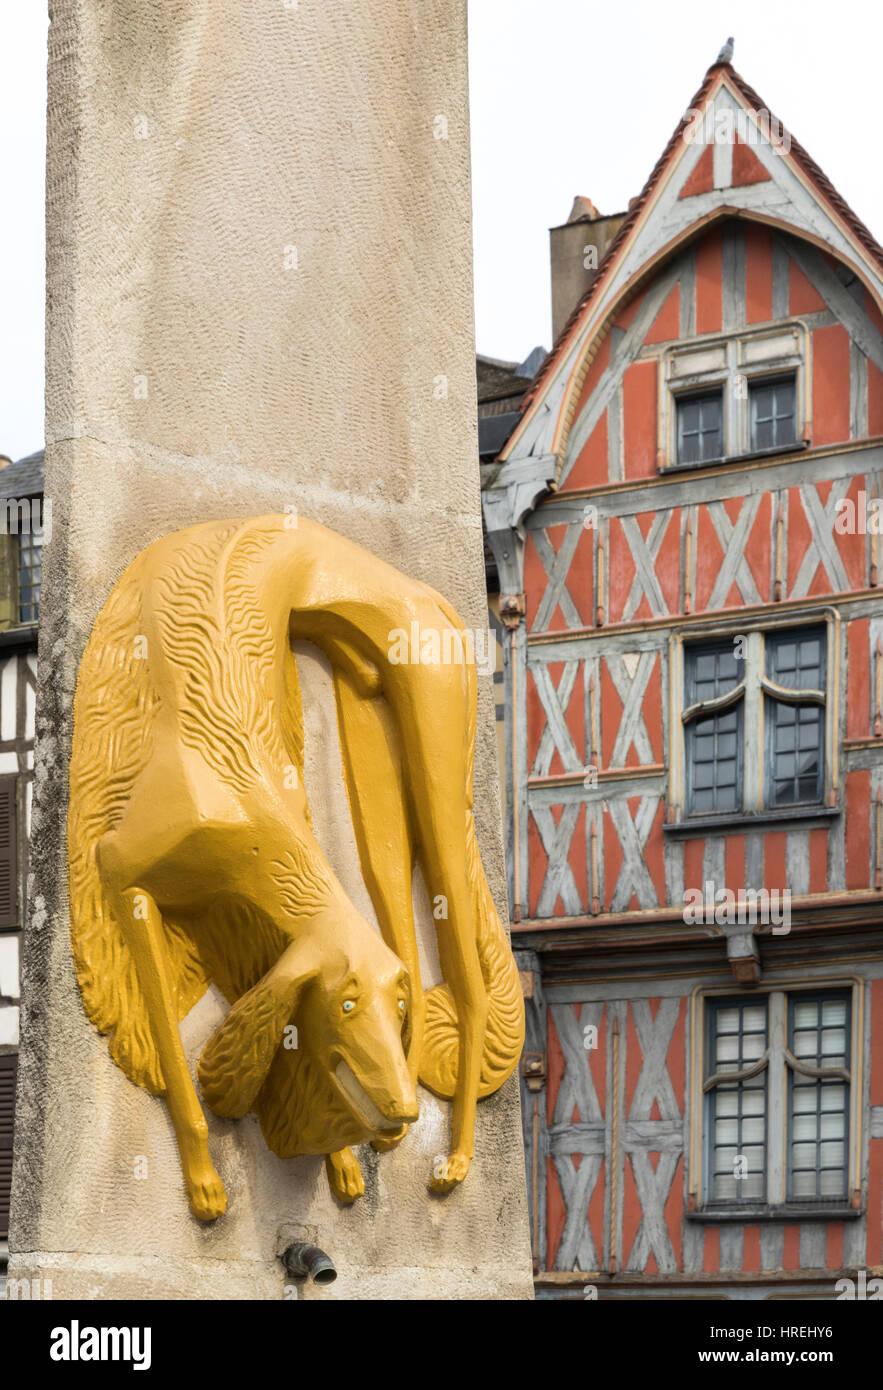 Fountain and Half-timbered house, Auxonne, Burgundy, France - Stock Image